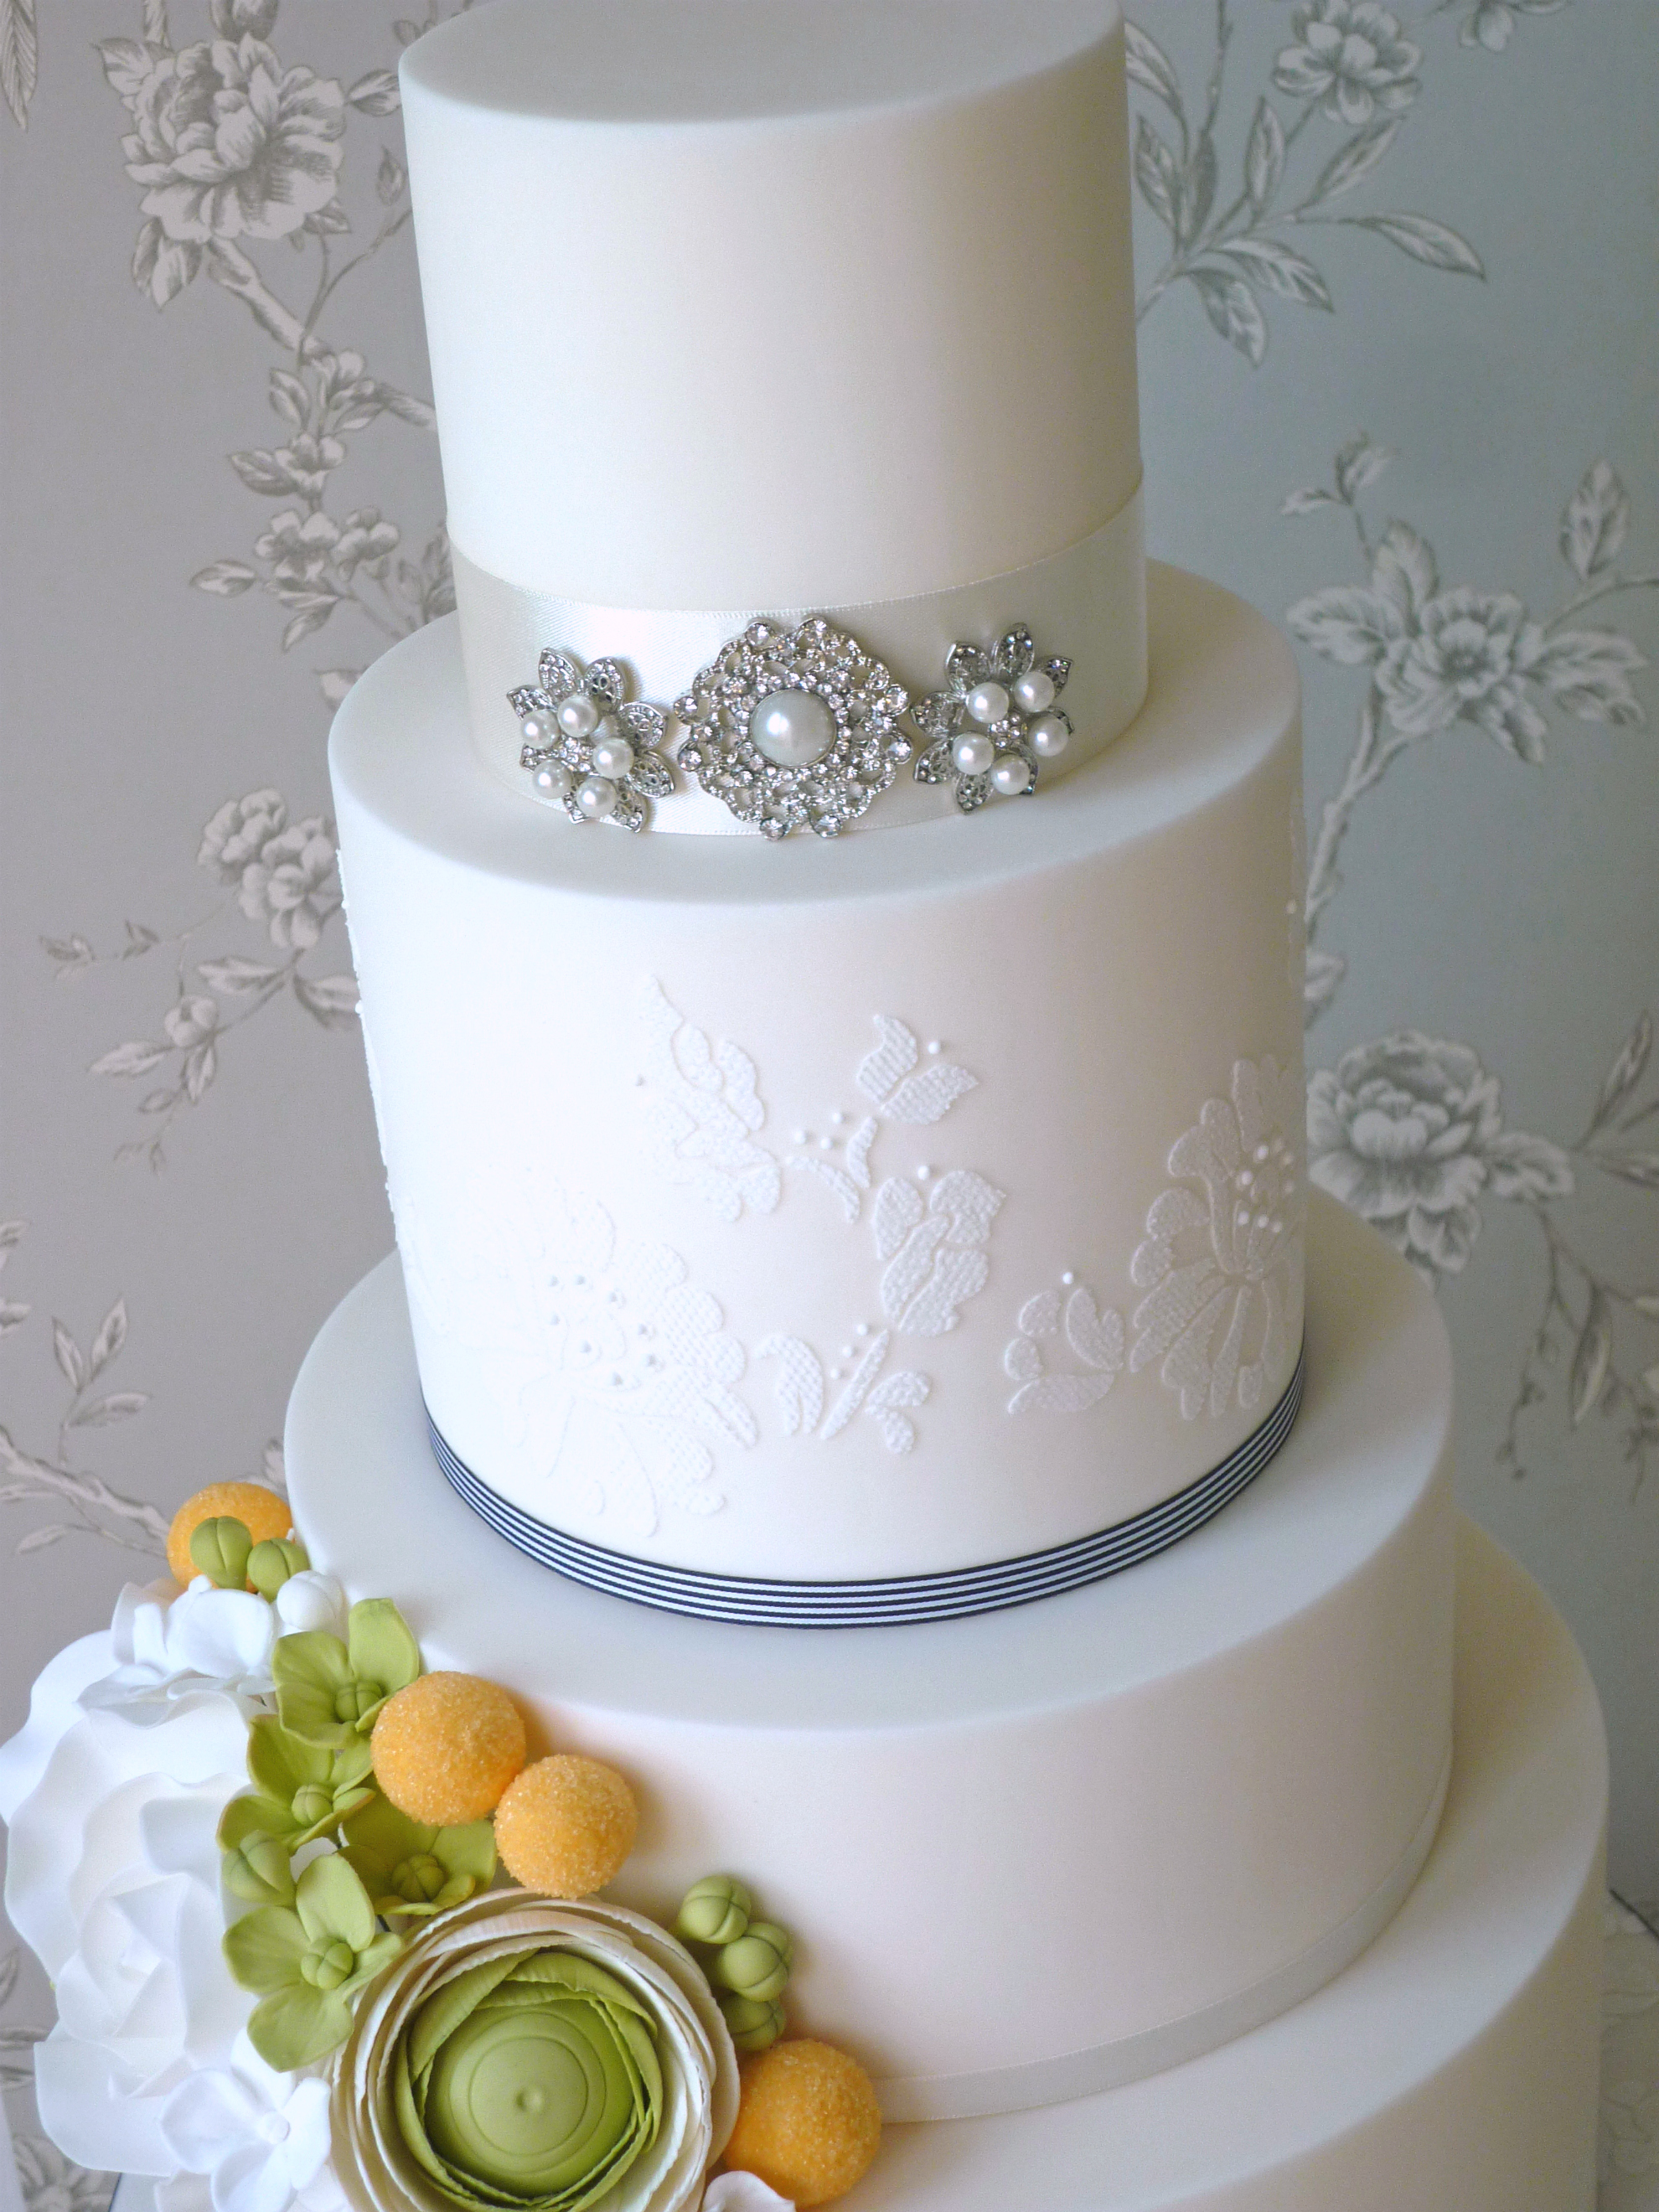 Beautiful Edible Art from the The Designer Cake Company